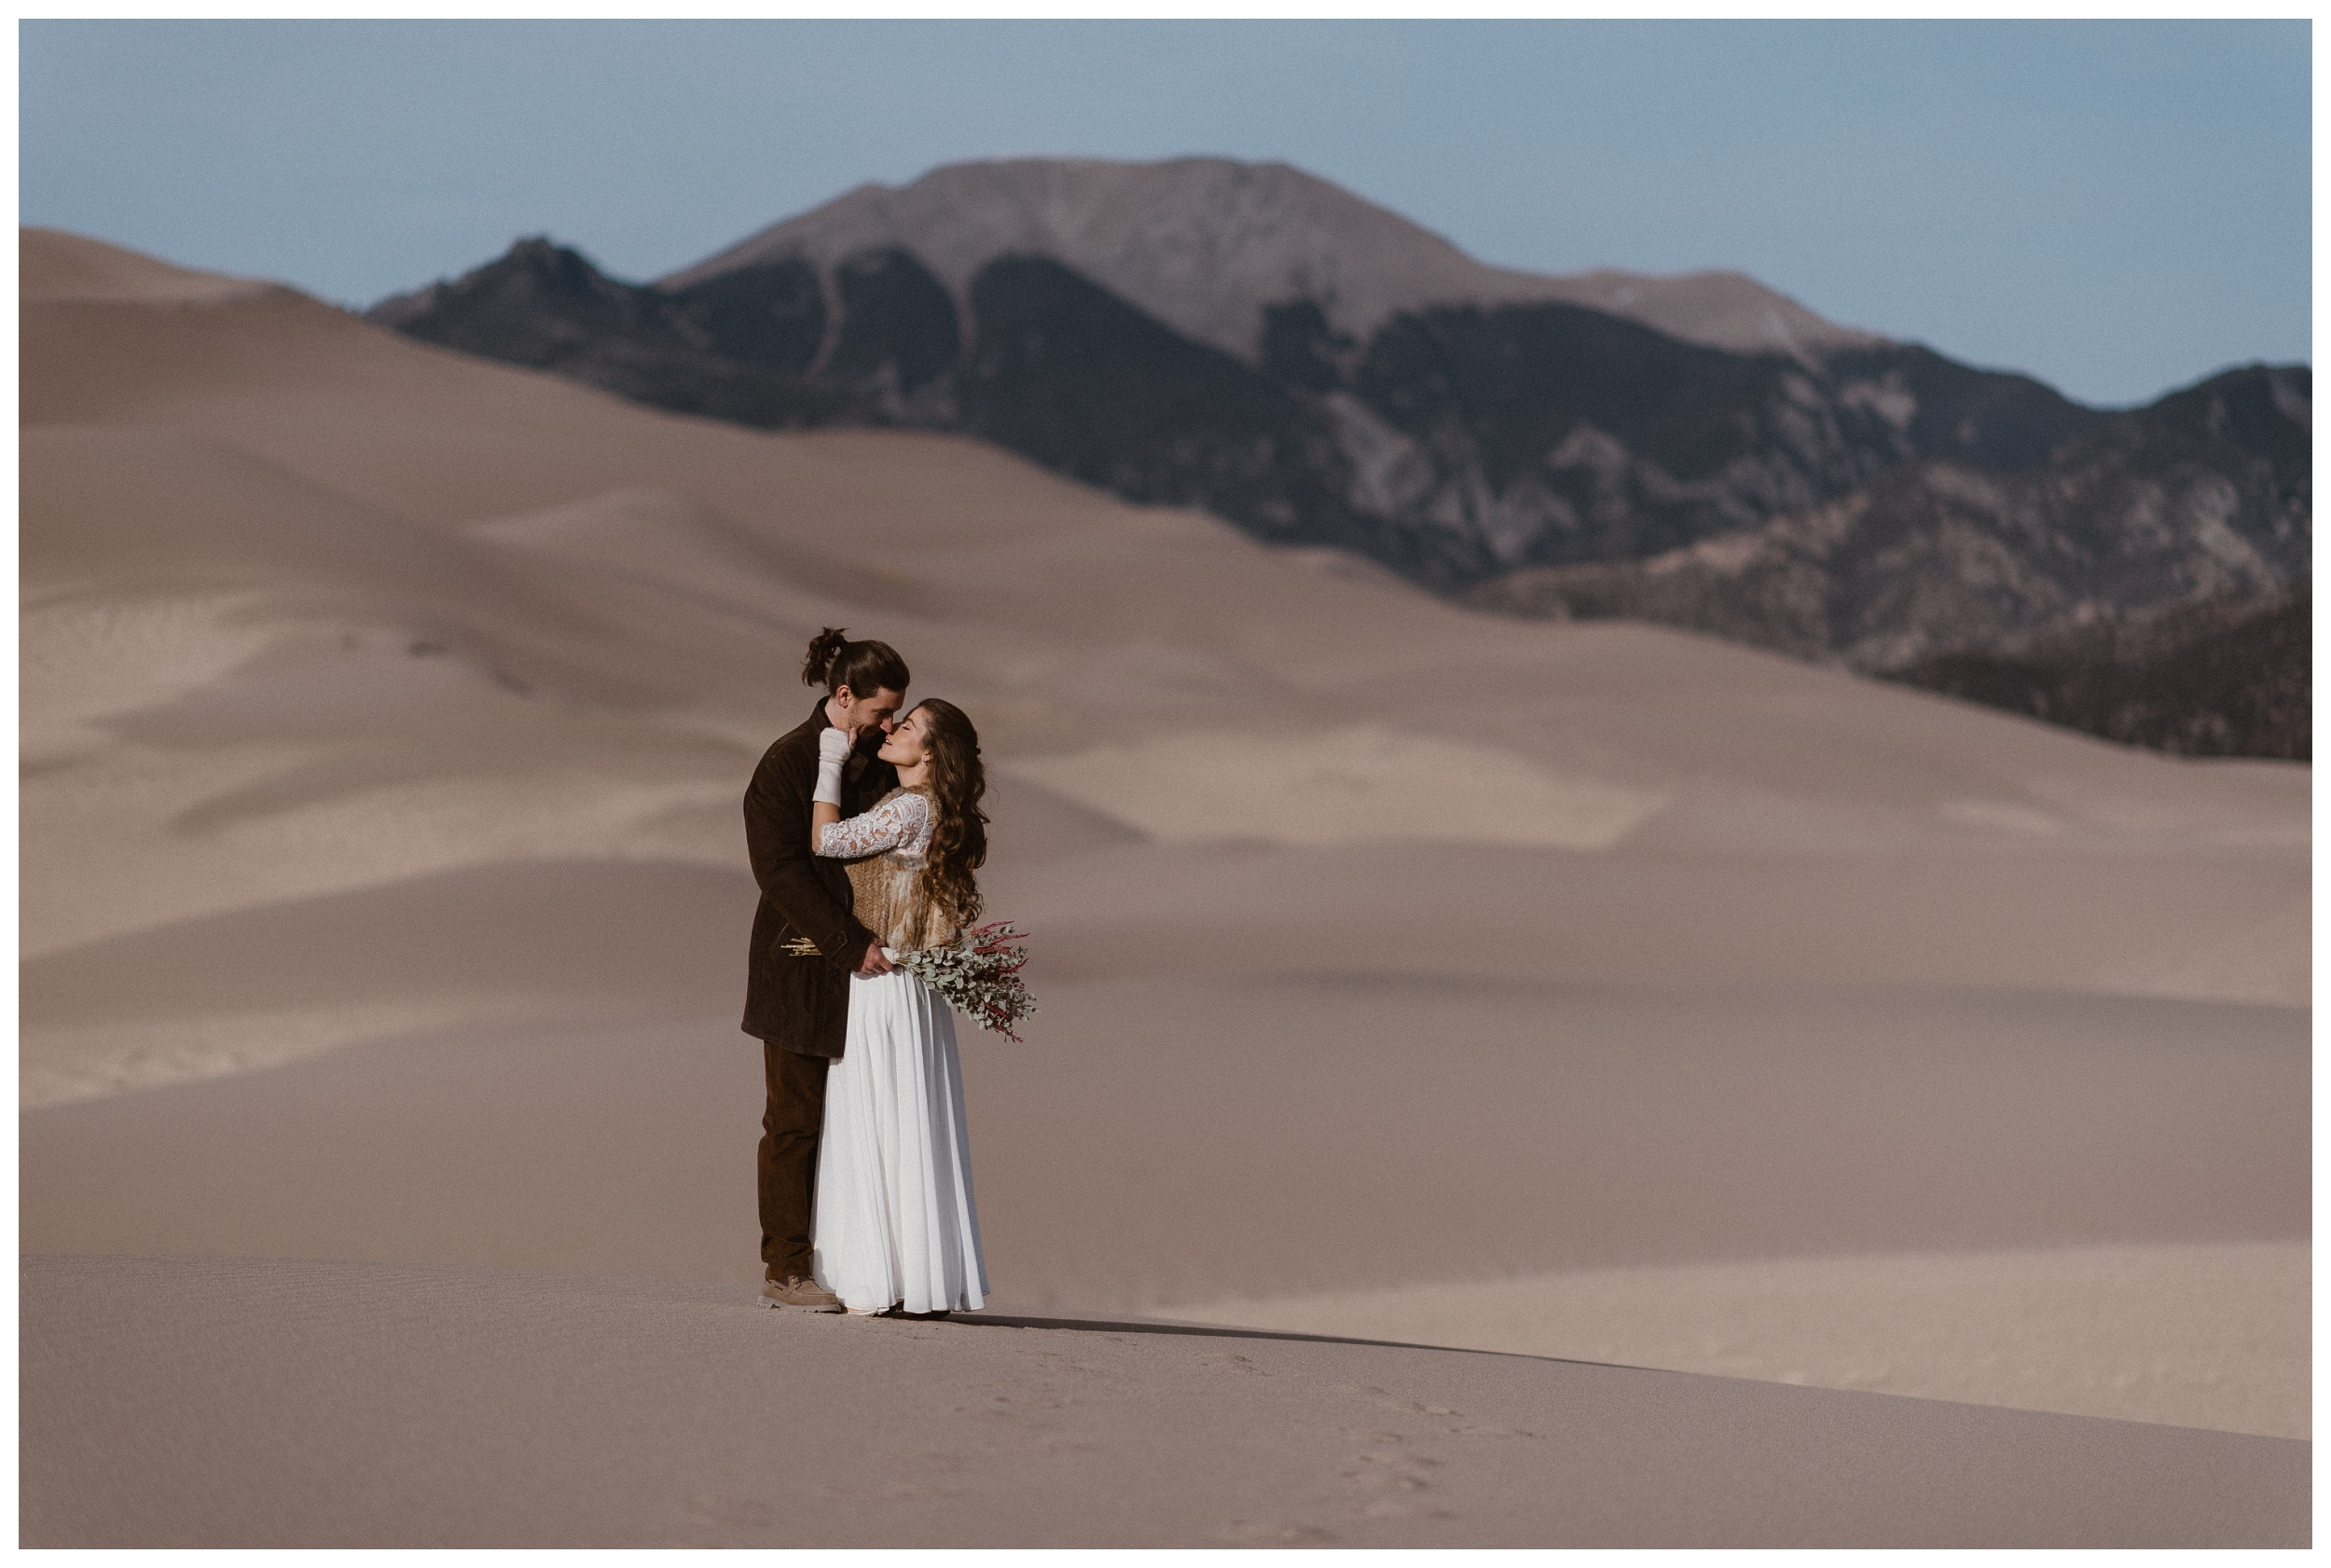 Olivia and Justin kiss at the Great Sand Dunes National Park before their winter elopement wedding ceremony. Photo by Maddie Mae Photo, Adventures Instead.